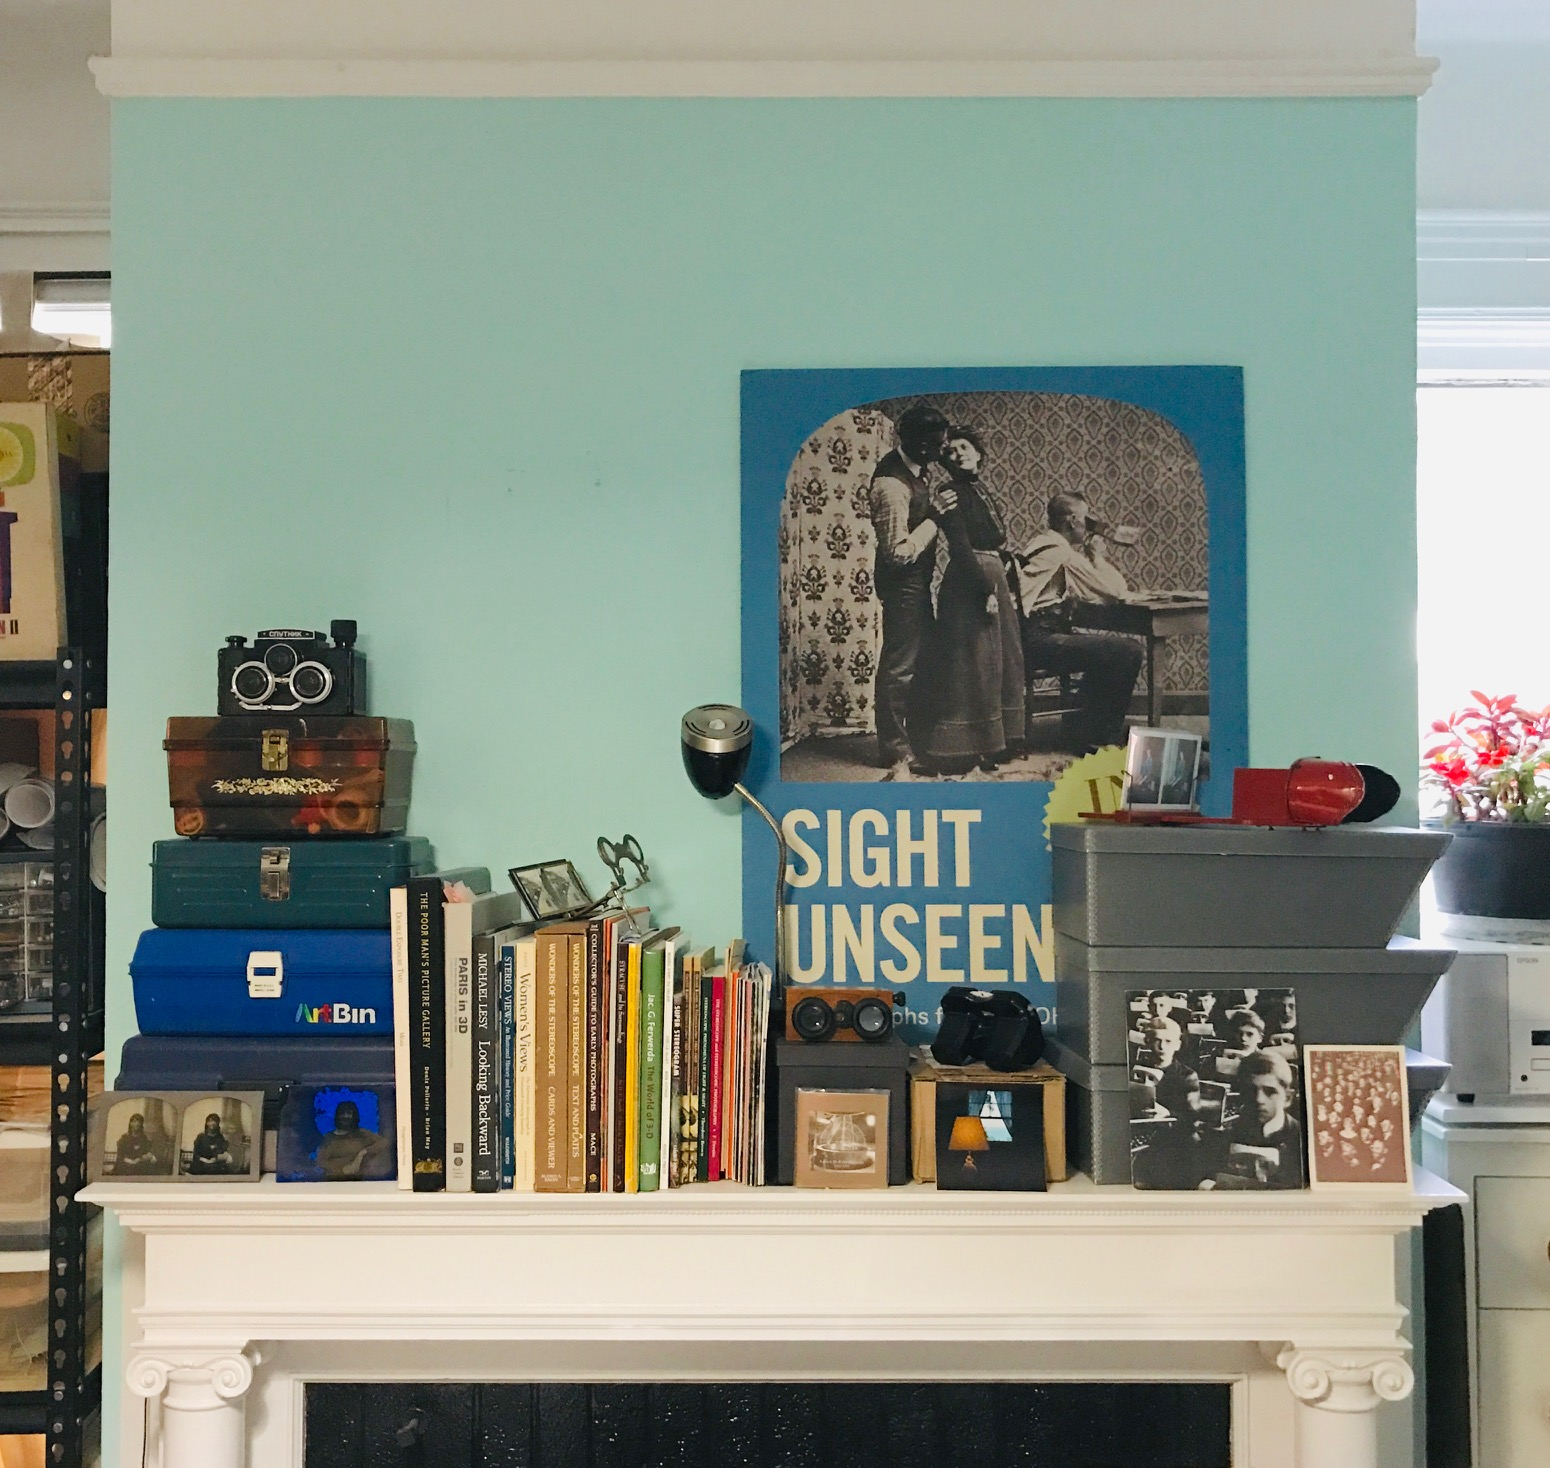 Colleen Woolpert 's studio bookshelf featuring a poster for her 2012 exhibition on the history of stereographs.